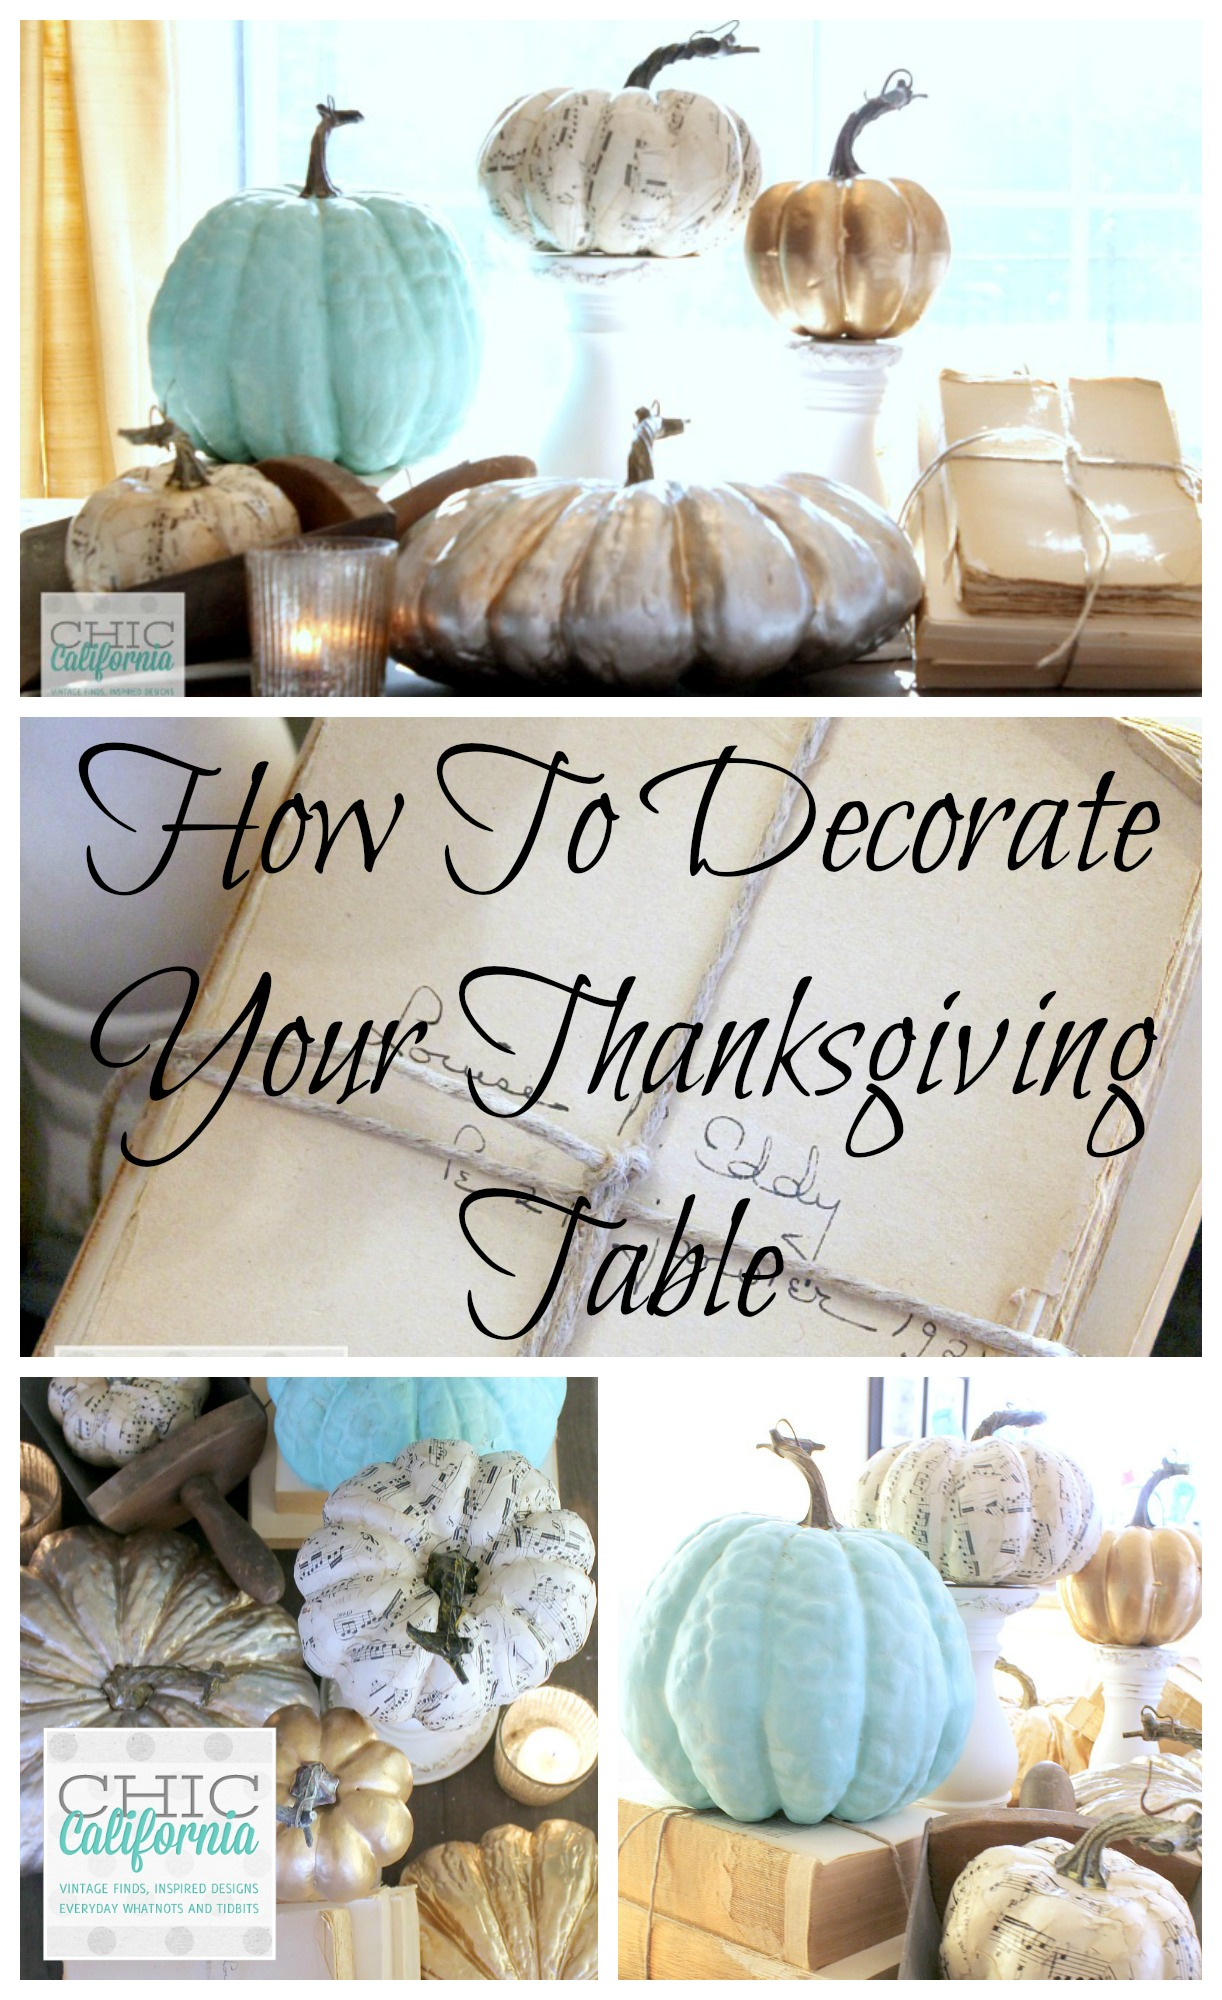 How To Decorate Your Thanksgiving Table Adrienne Elizabeth: how to decorate your house for thanksgiving